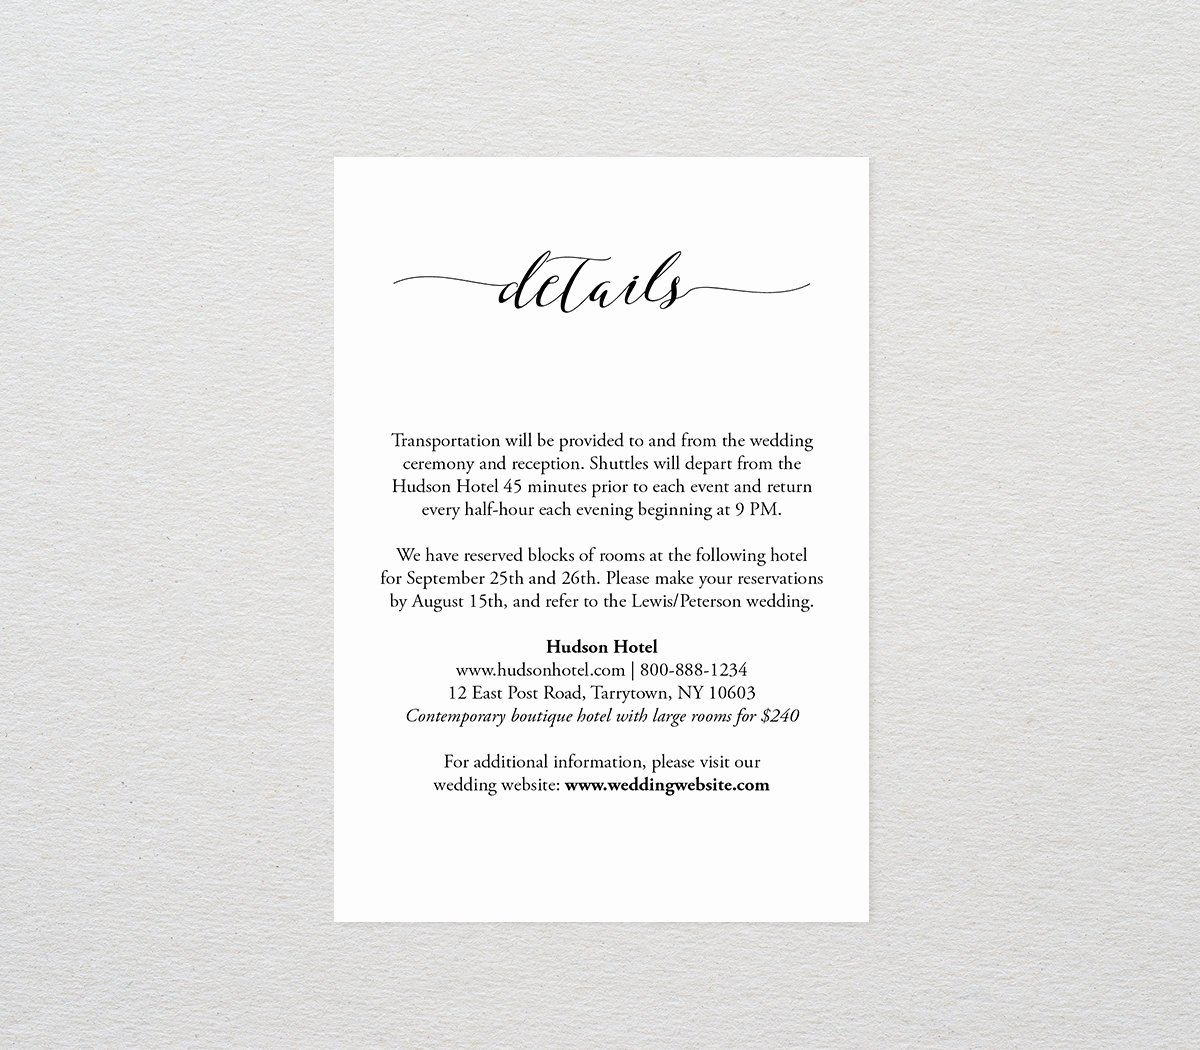 Wedding Information Card Template Fresh Details Card Template Printable Wedding Info Ac Modations